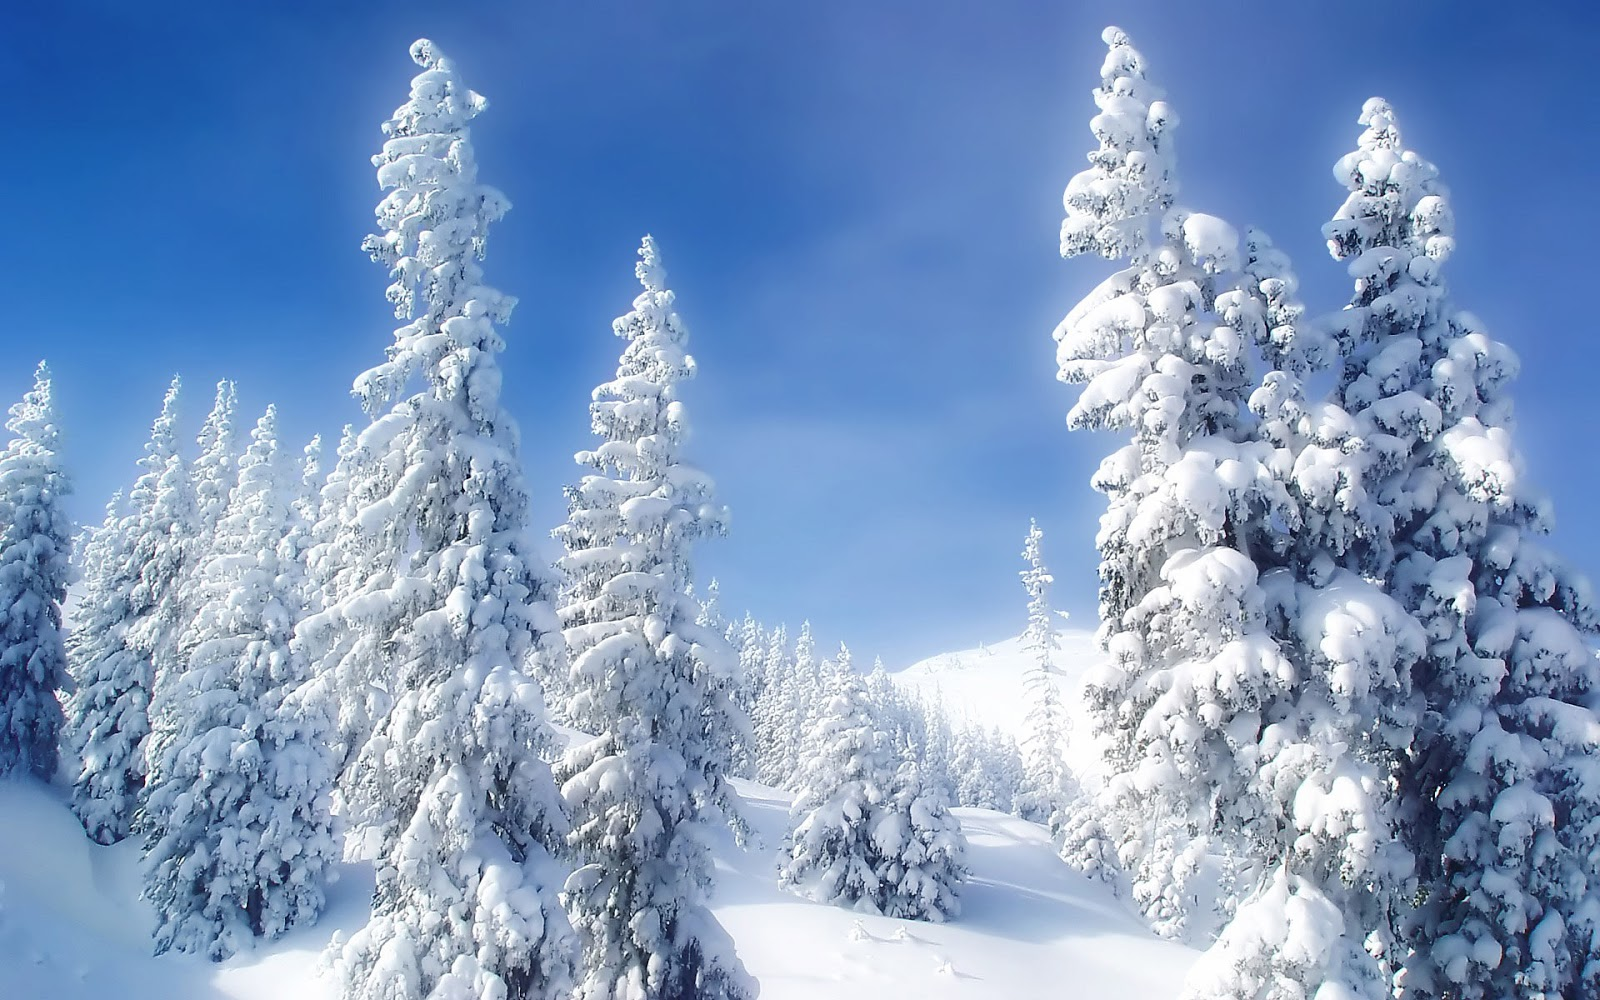 http://3.bp.blogspot.com/-ITTcqHgkZT0/UNWoCNeHNSI/AAAAAAAABb0/99tcGKOiweQ/s1600/mountain_snow_forest_trees_wallpaper-wide.jpg